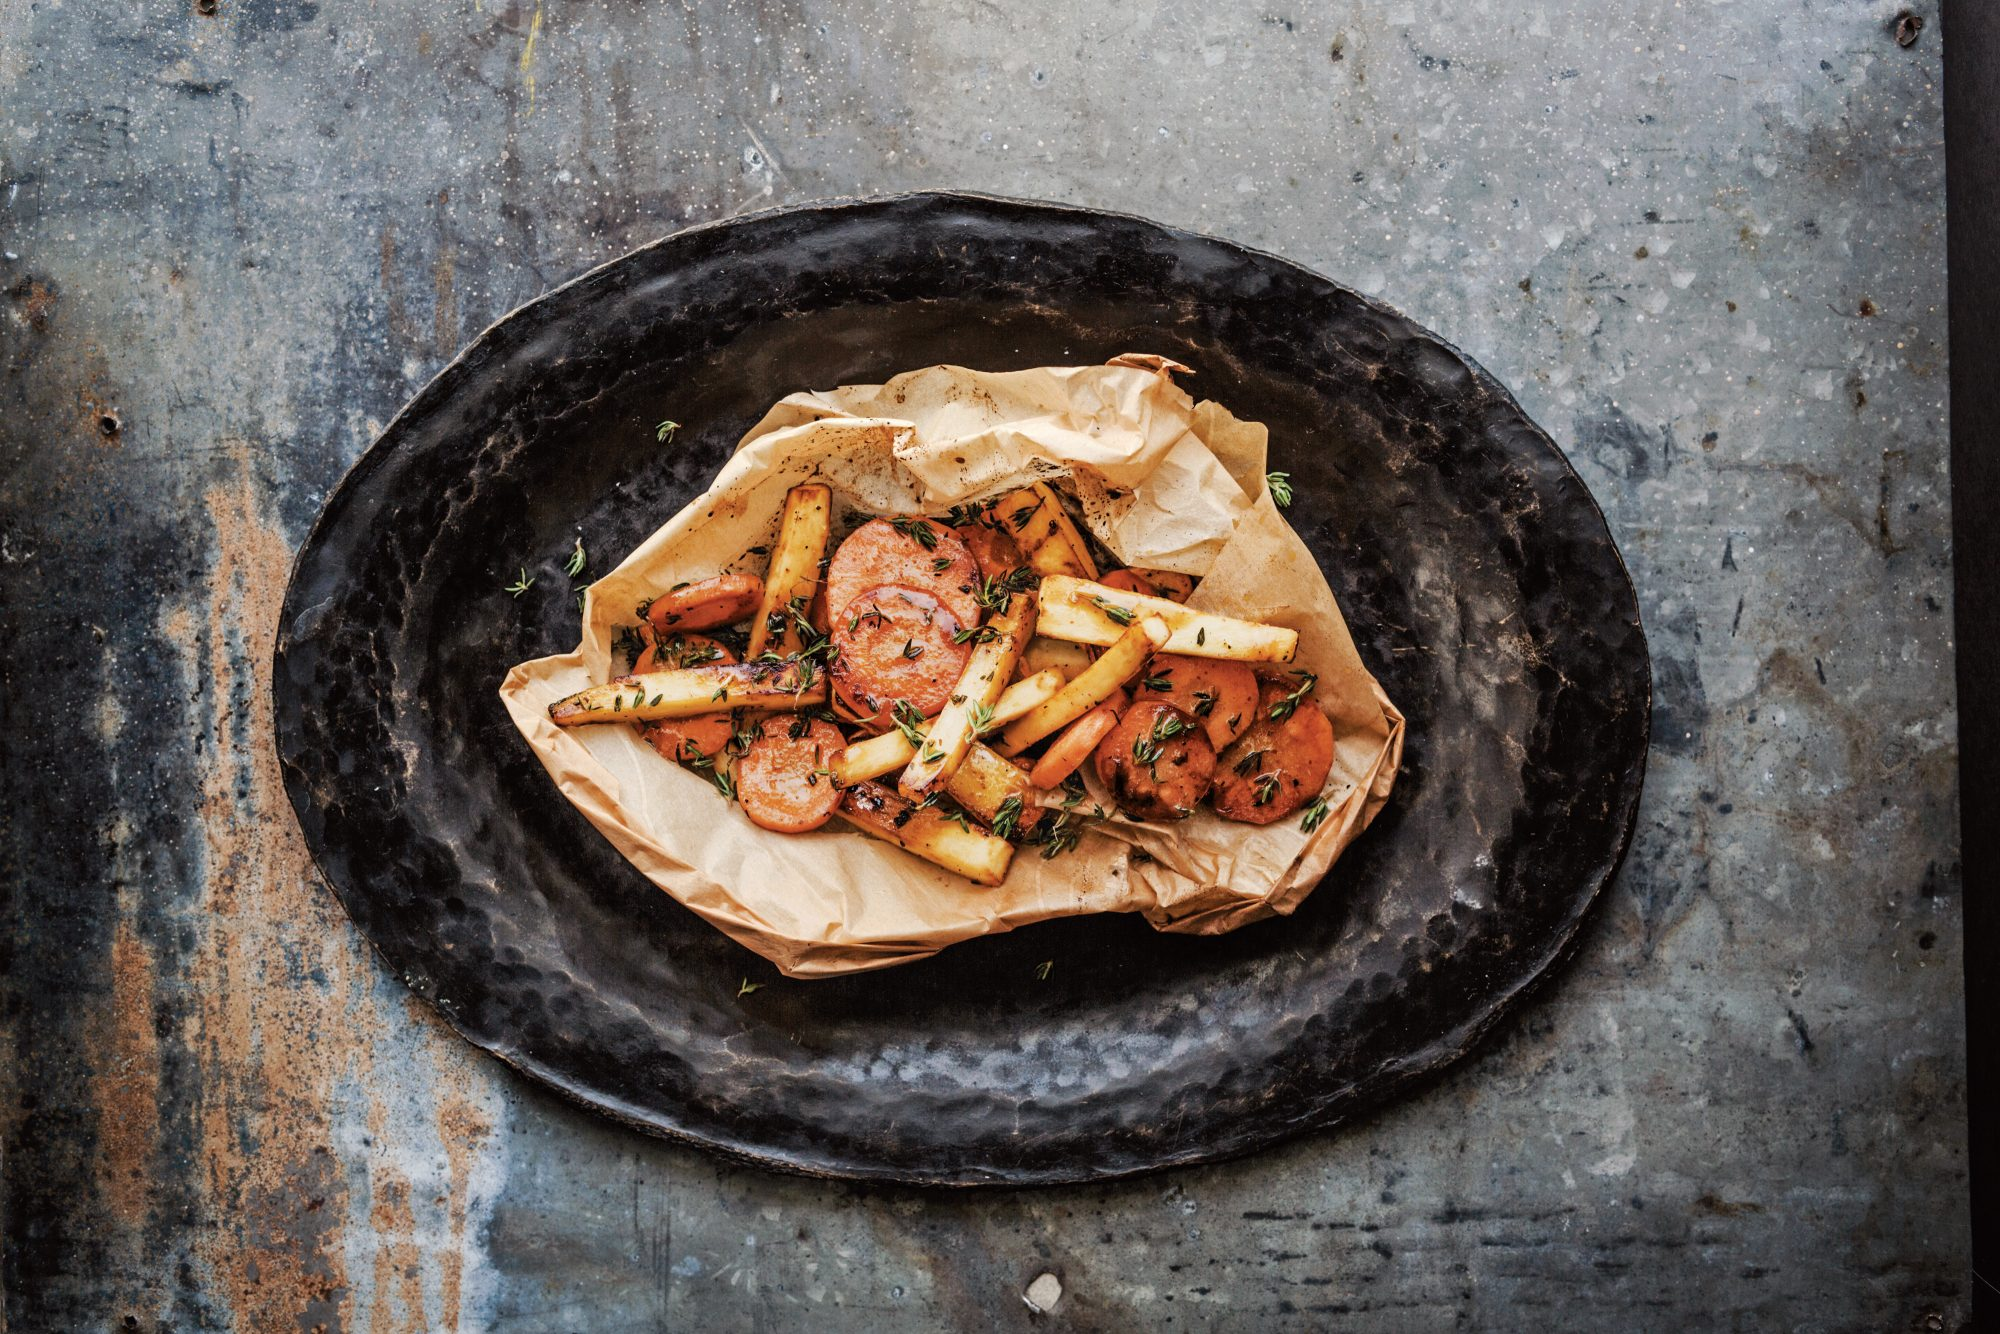 Parsnips and Carrots en Papillote